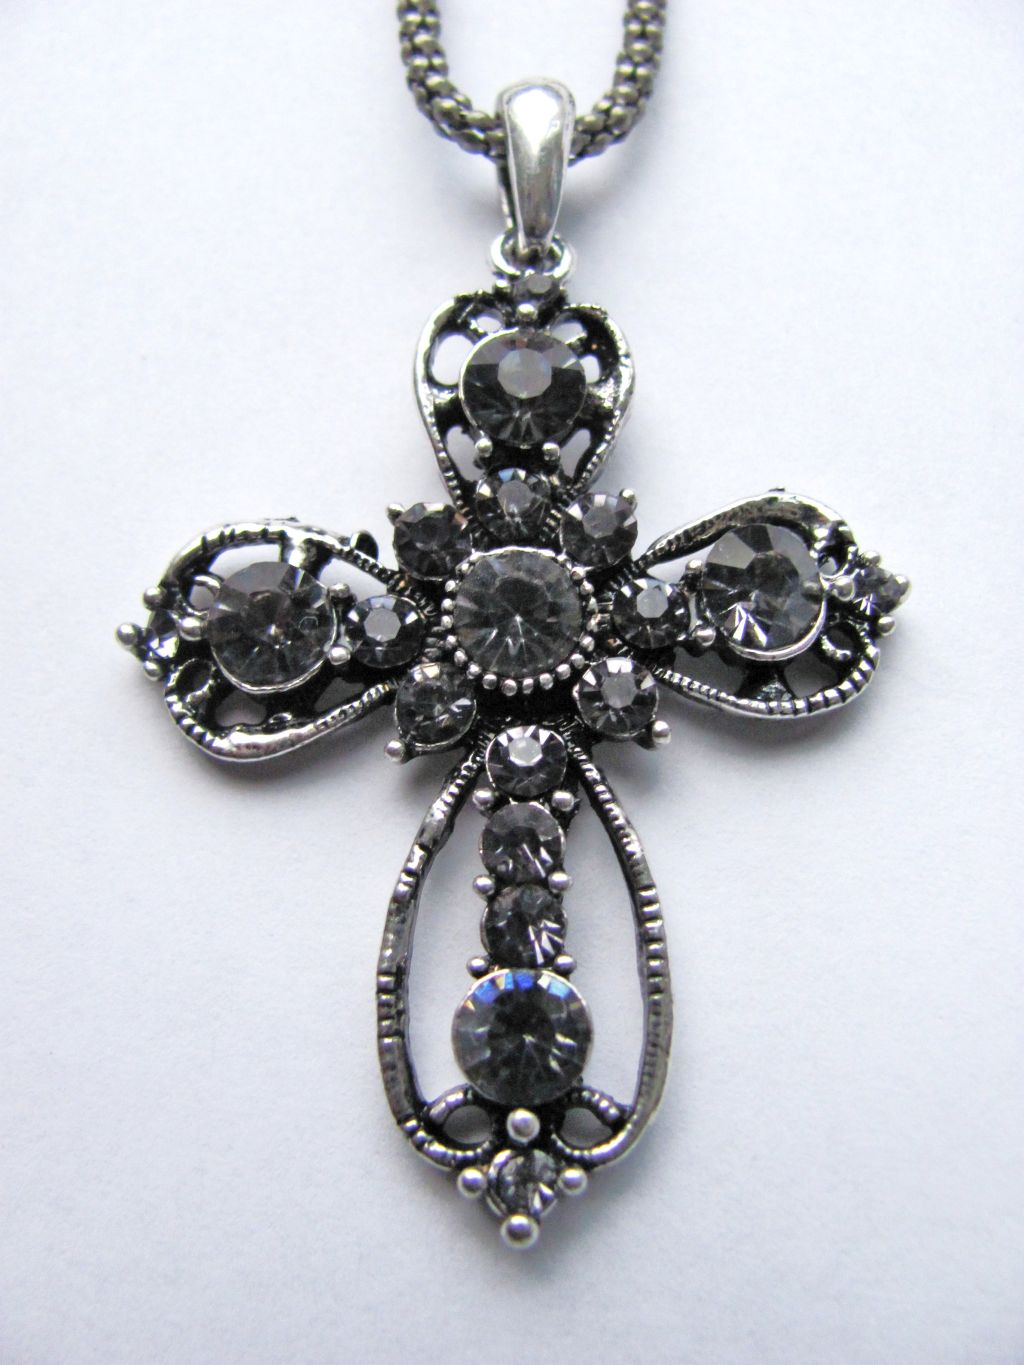 Filigree Style Cross Pendant Necklace Genuine Crystals Smoked Tone